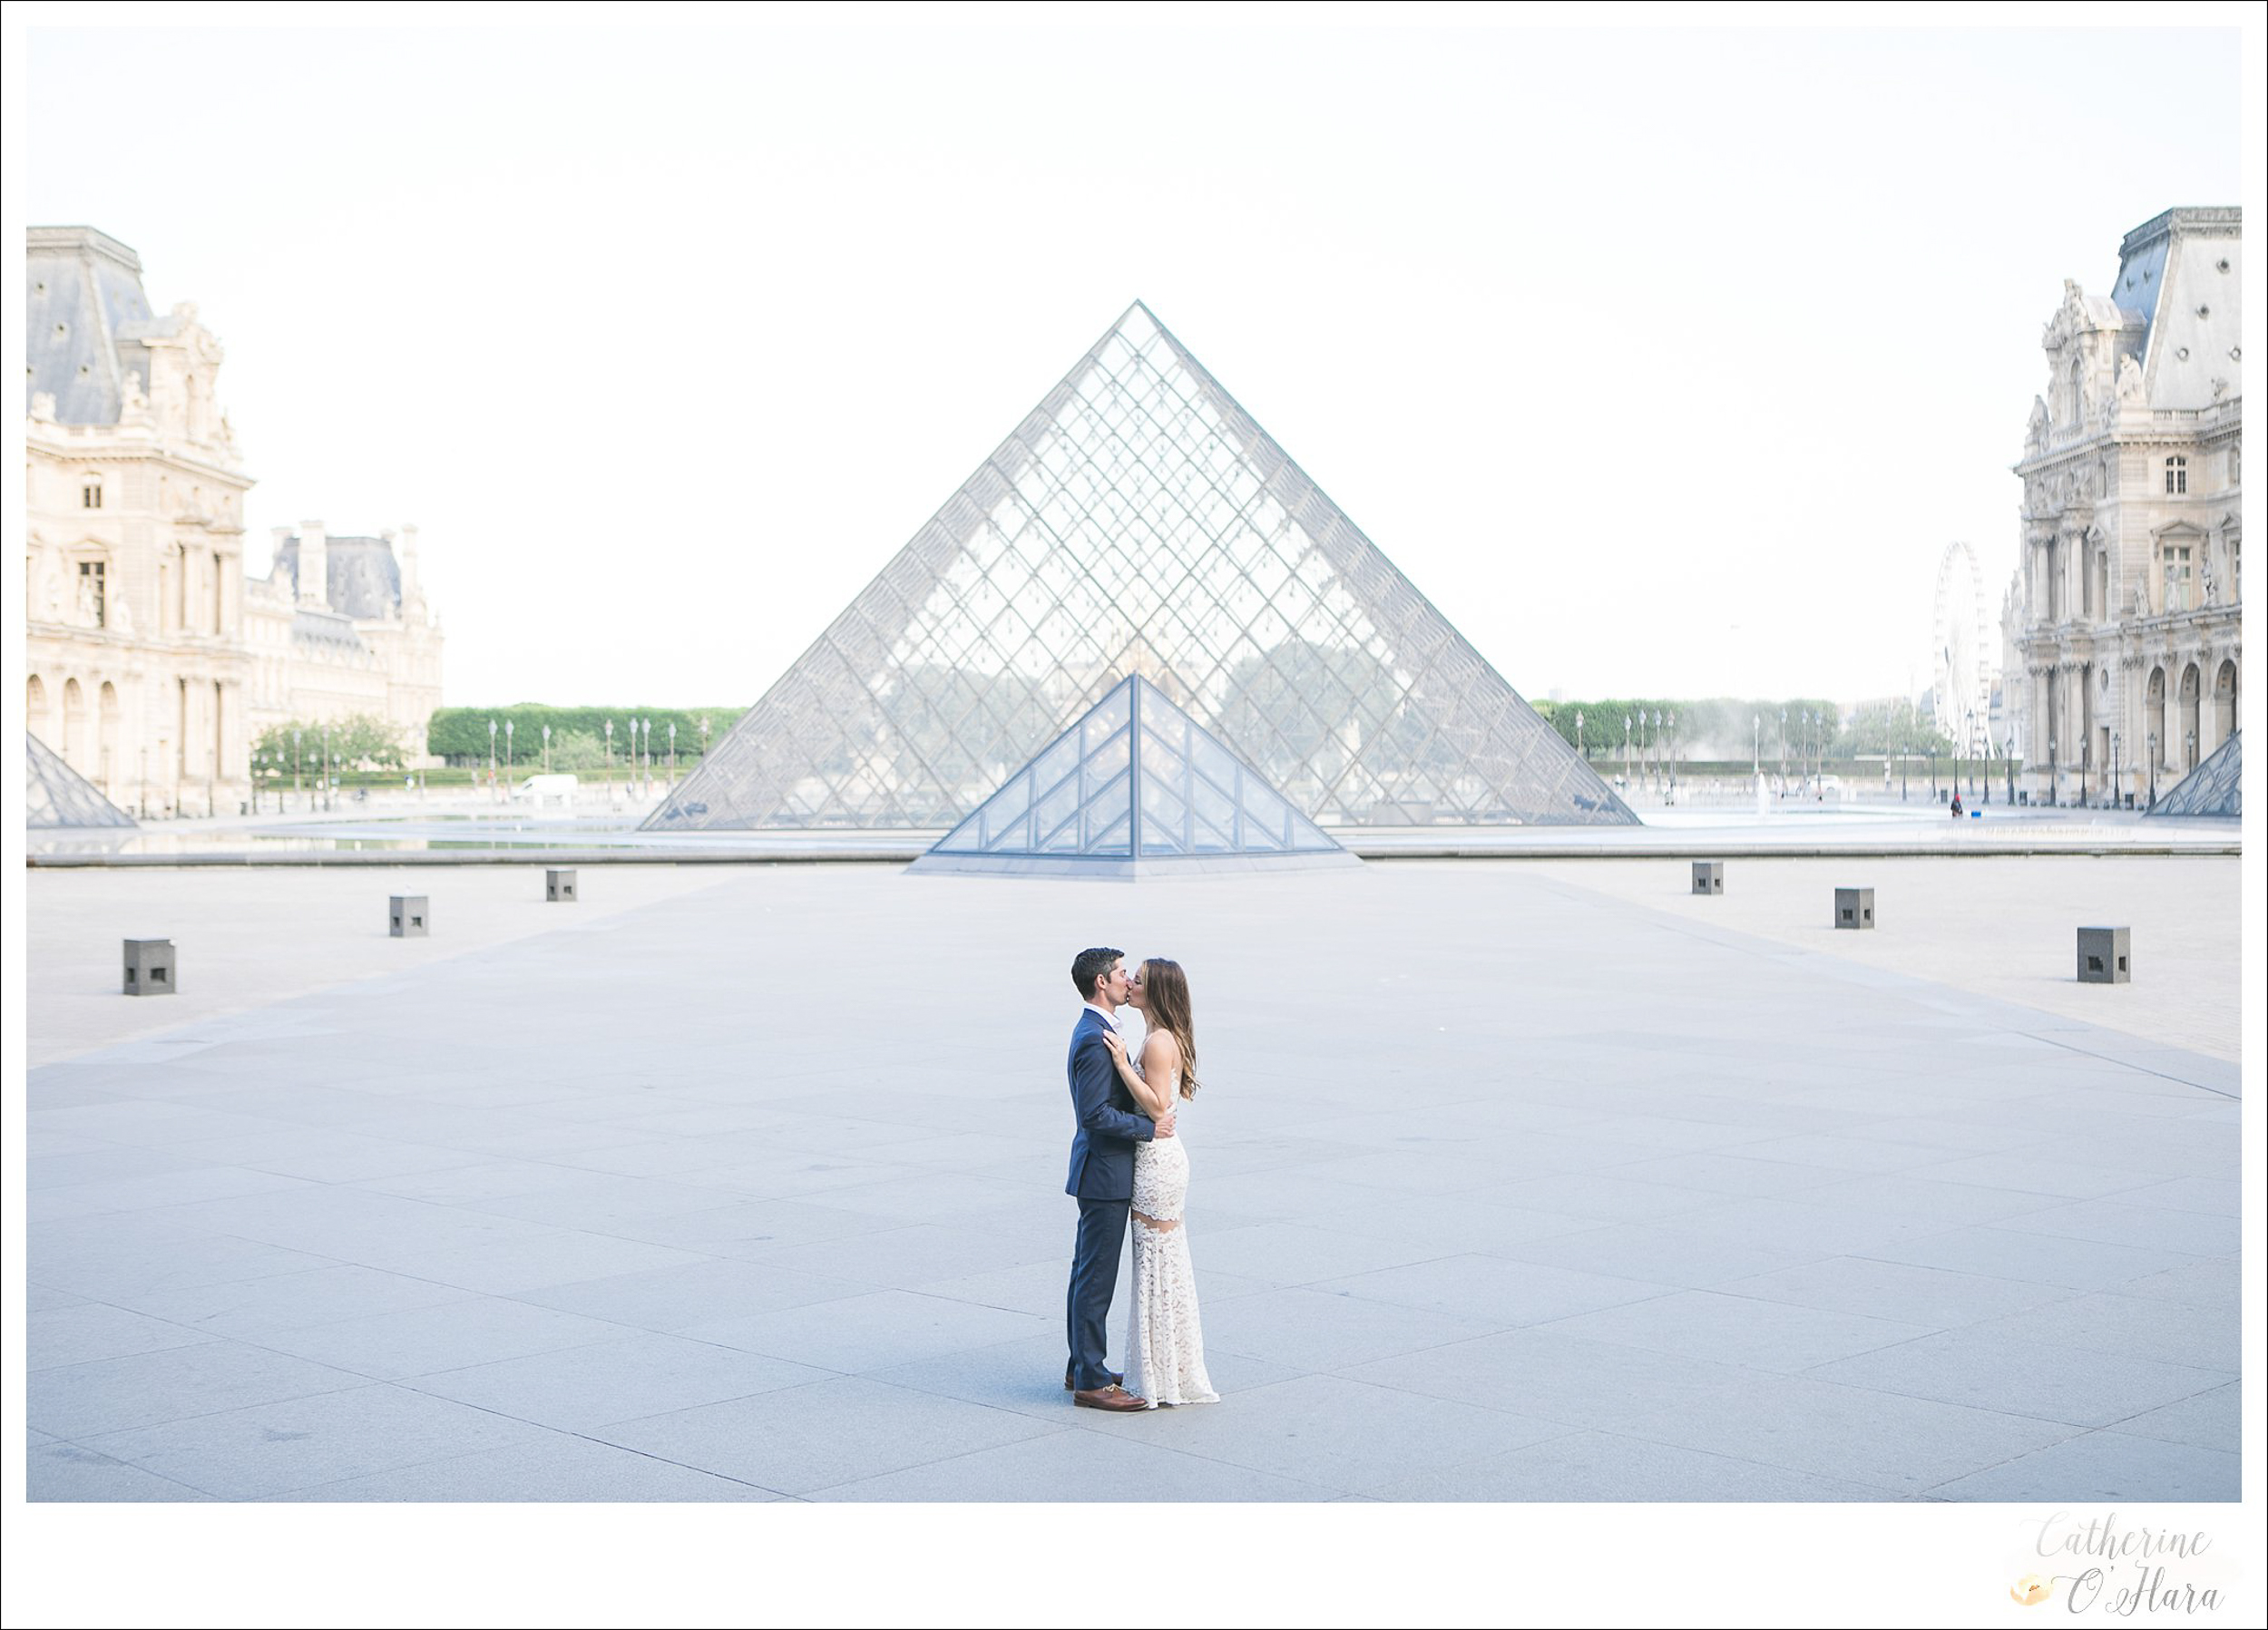 paris france engagement proposal photographer-41.jpg